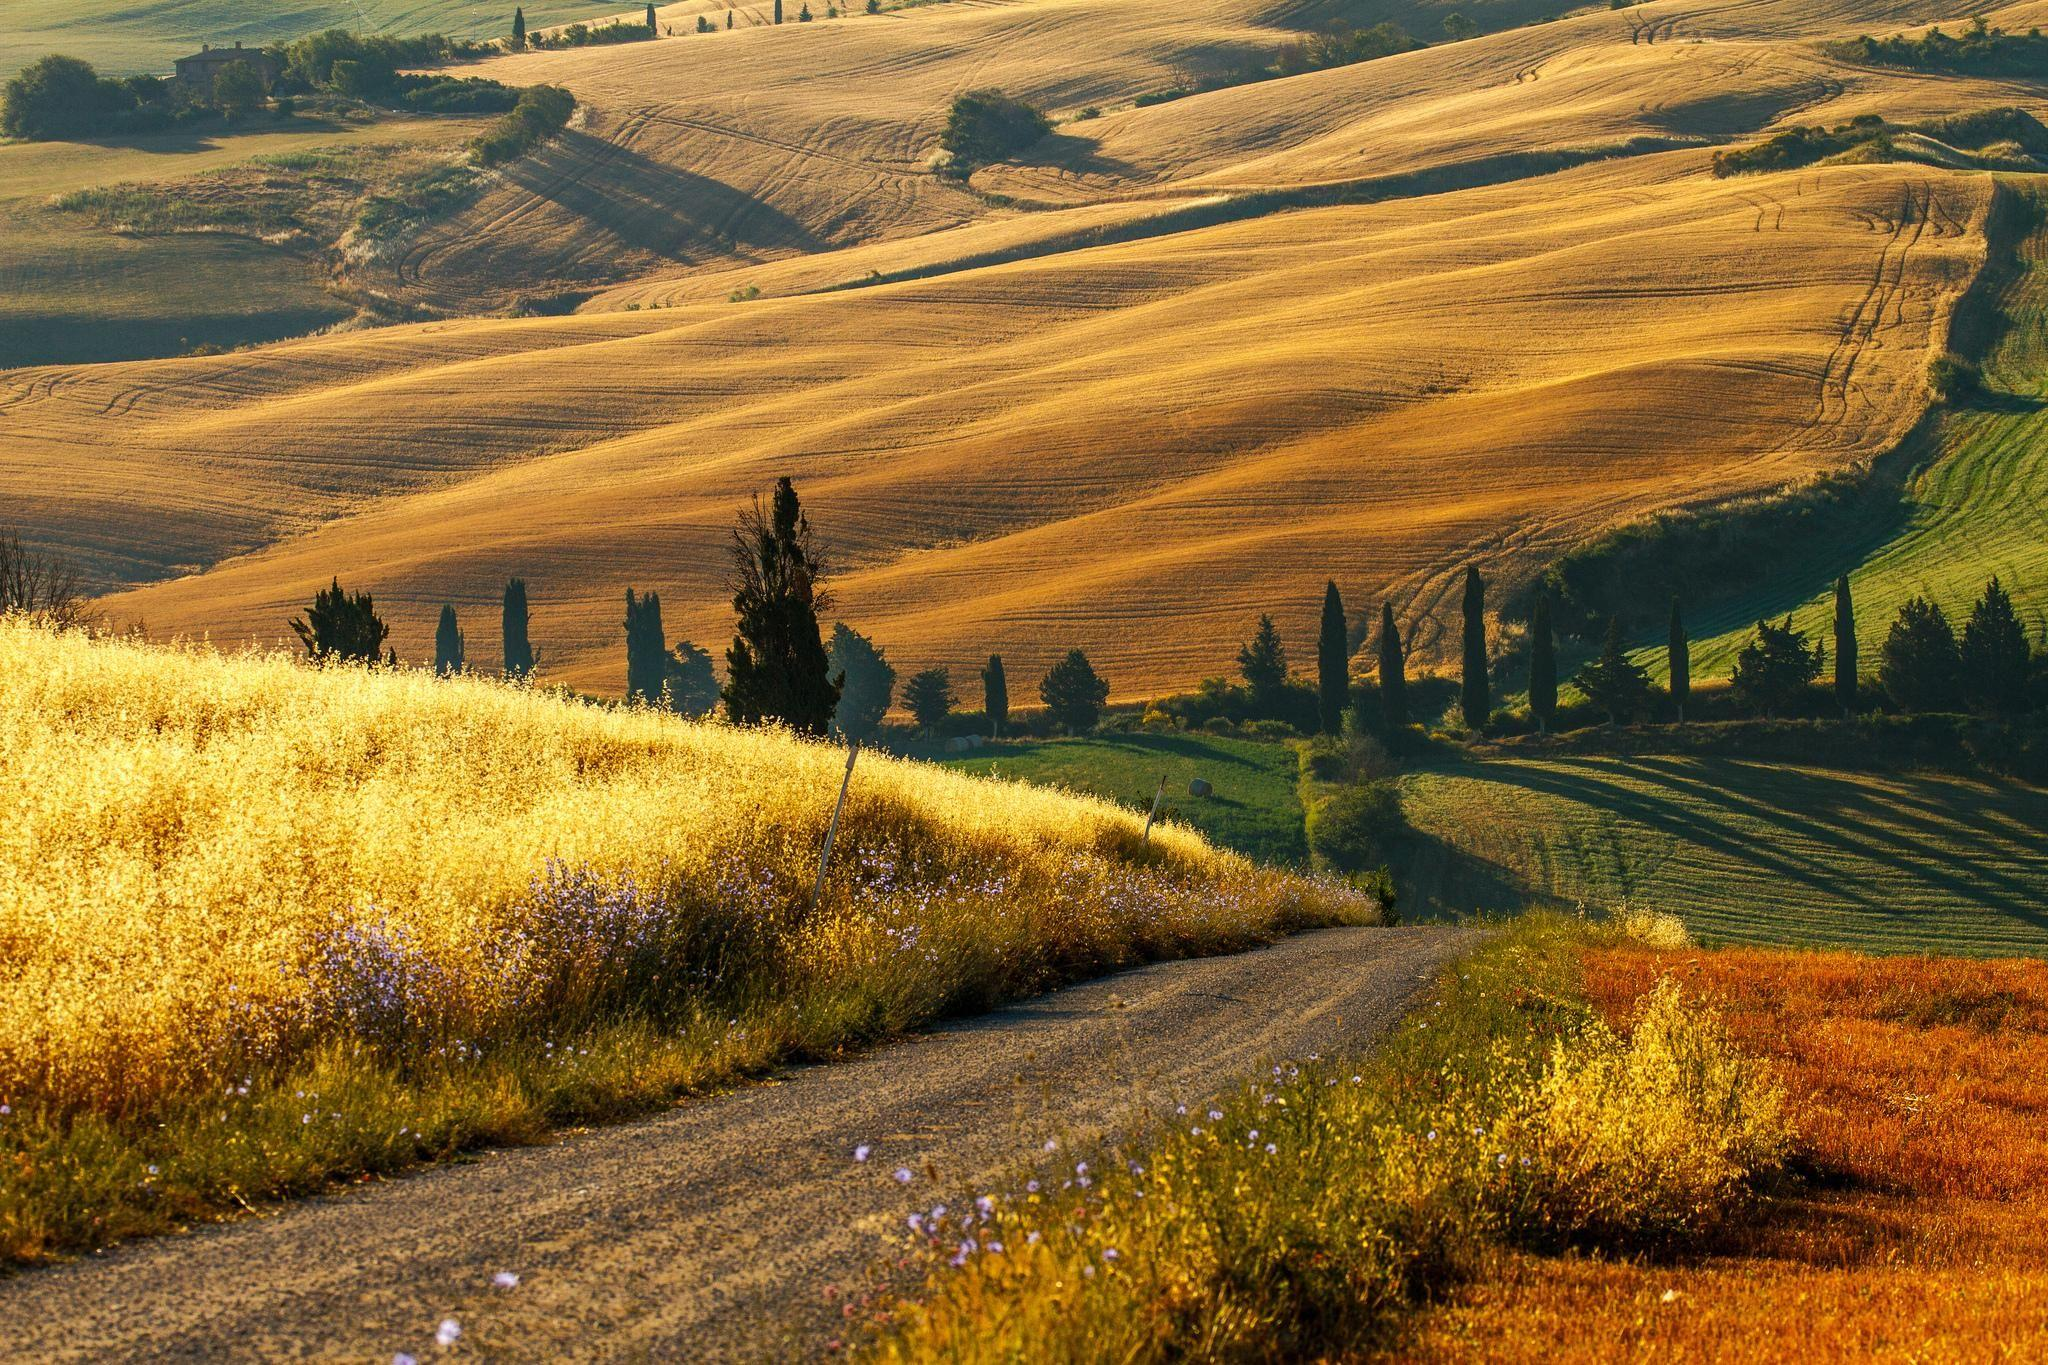 tuscany countryside | | Under the Tuscan Sun | Italy landscape ...